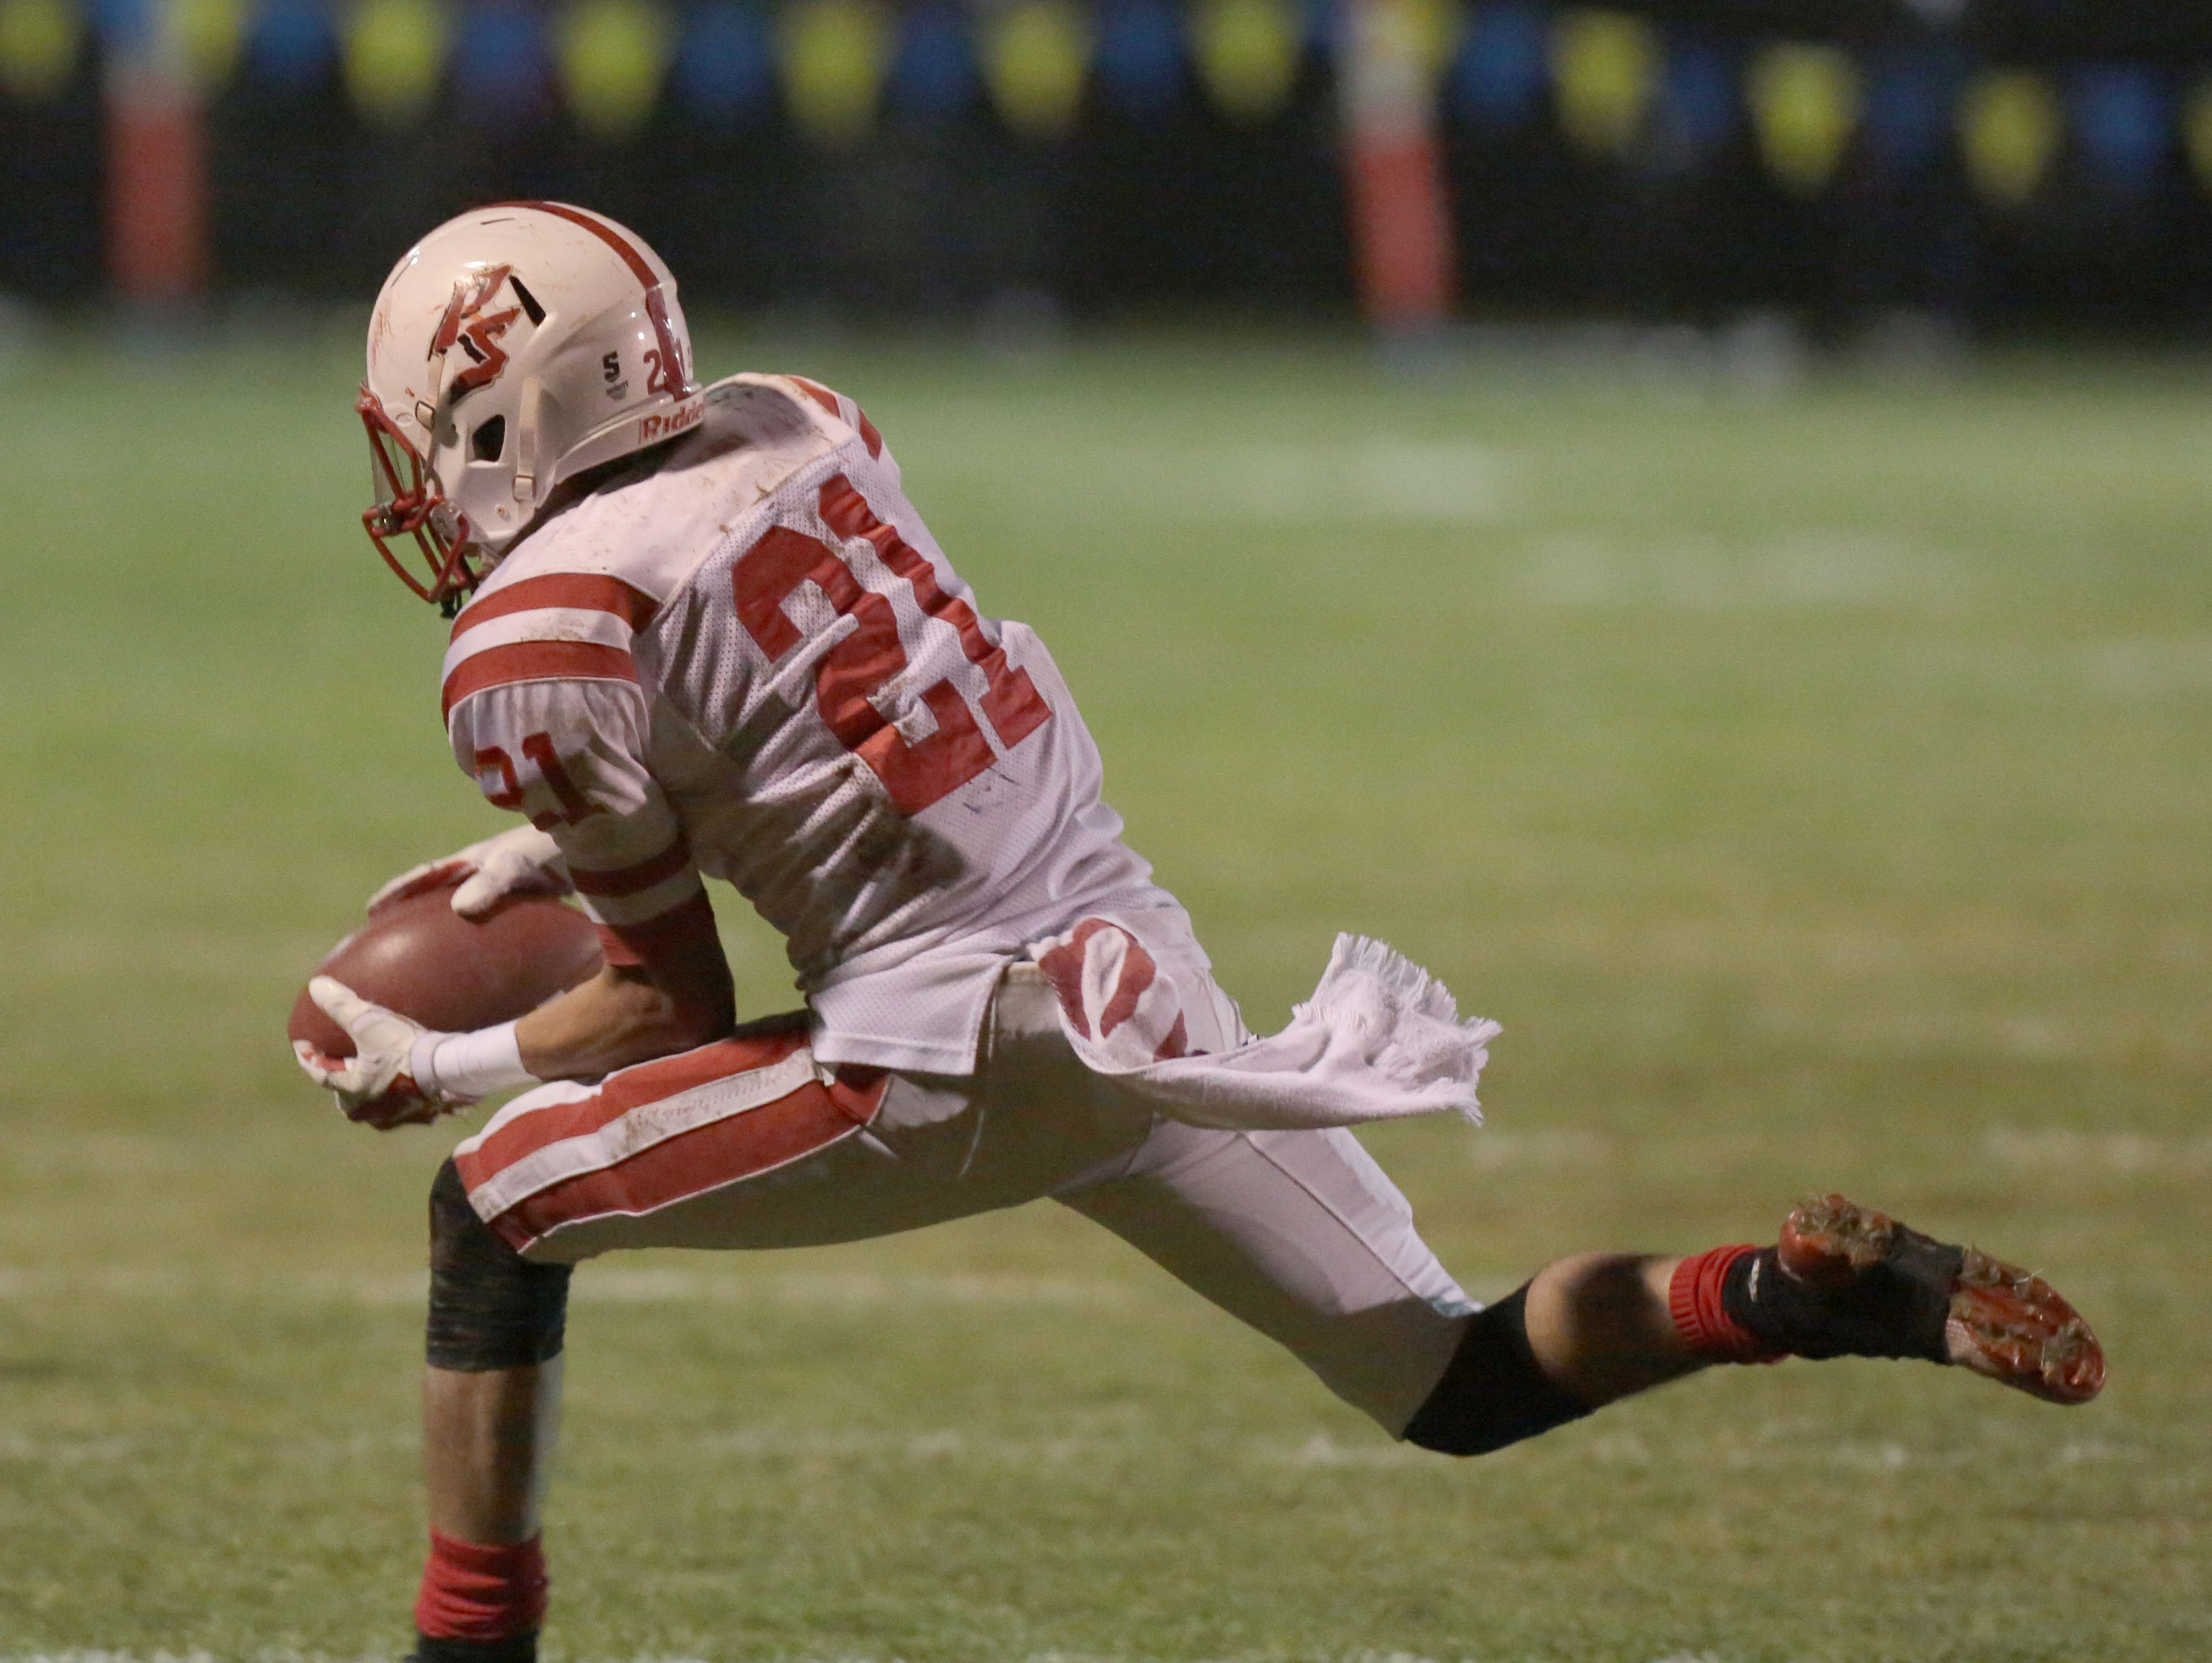 Palm Springs and Serrano football action during the CIF Eastern Division title game in Phelan on Friday, December 5, 2014.